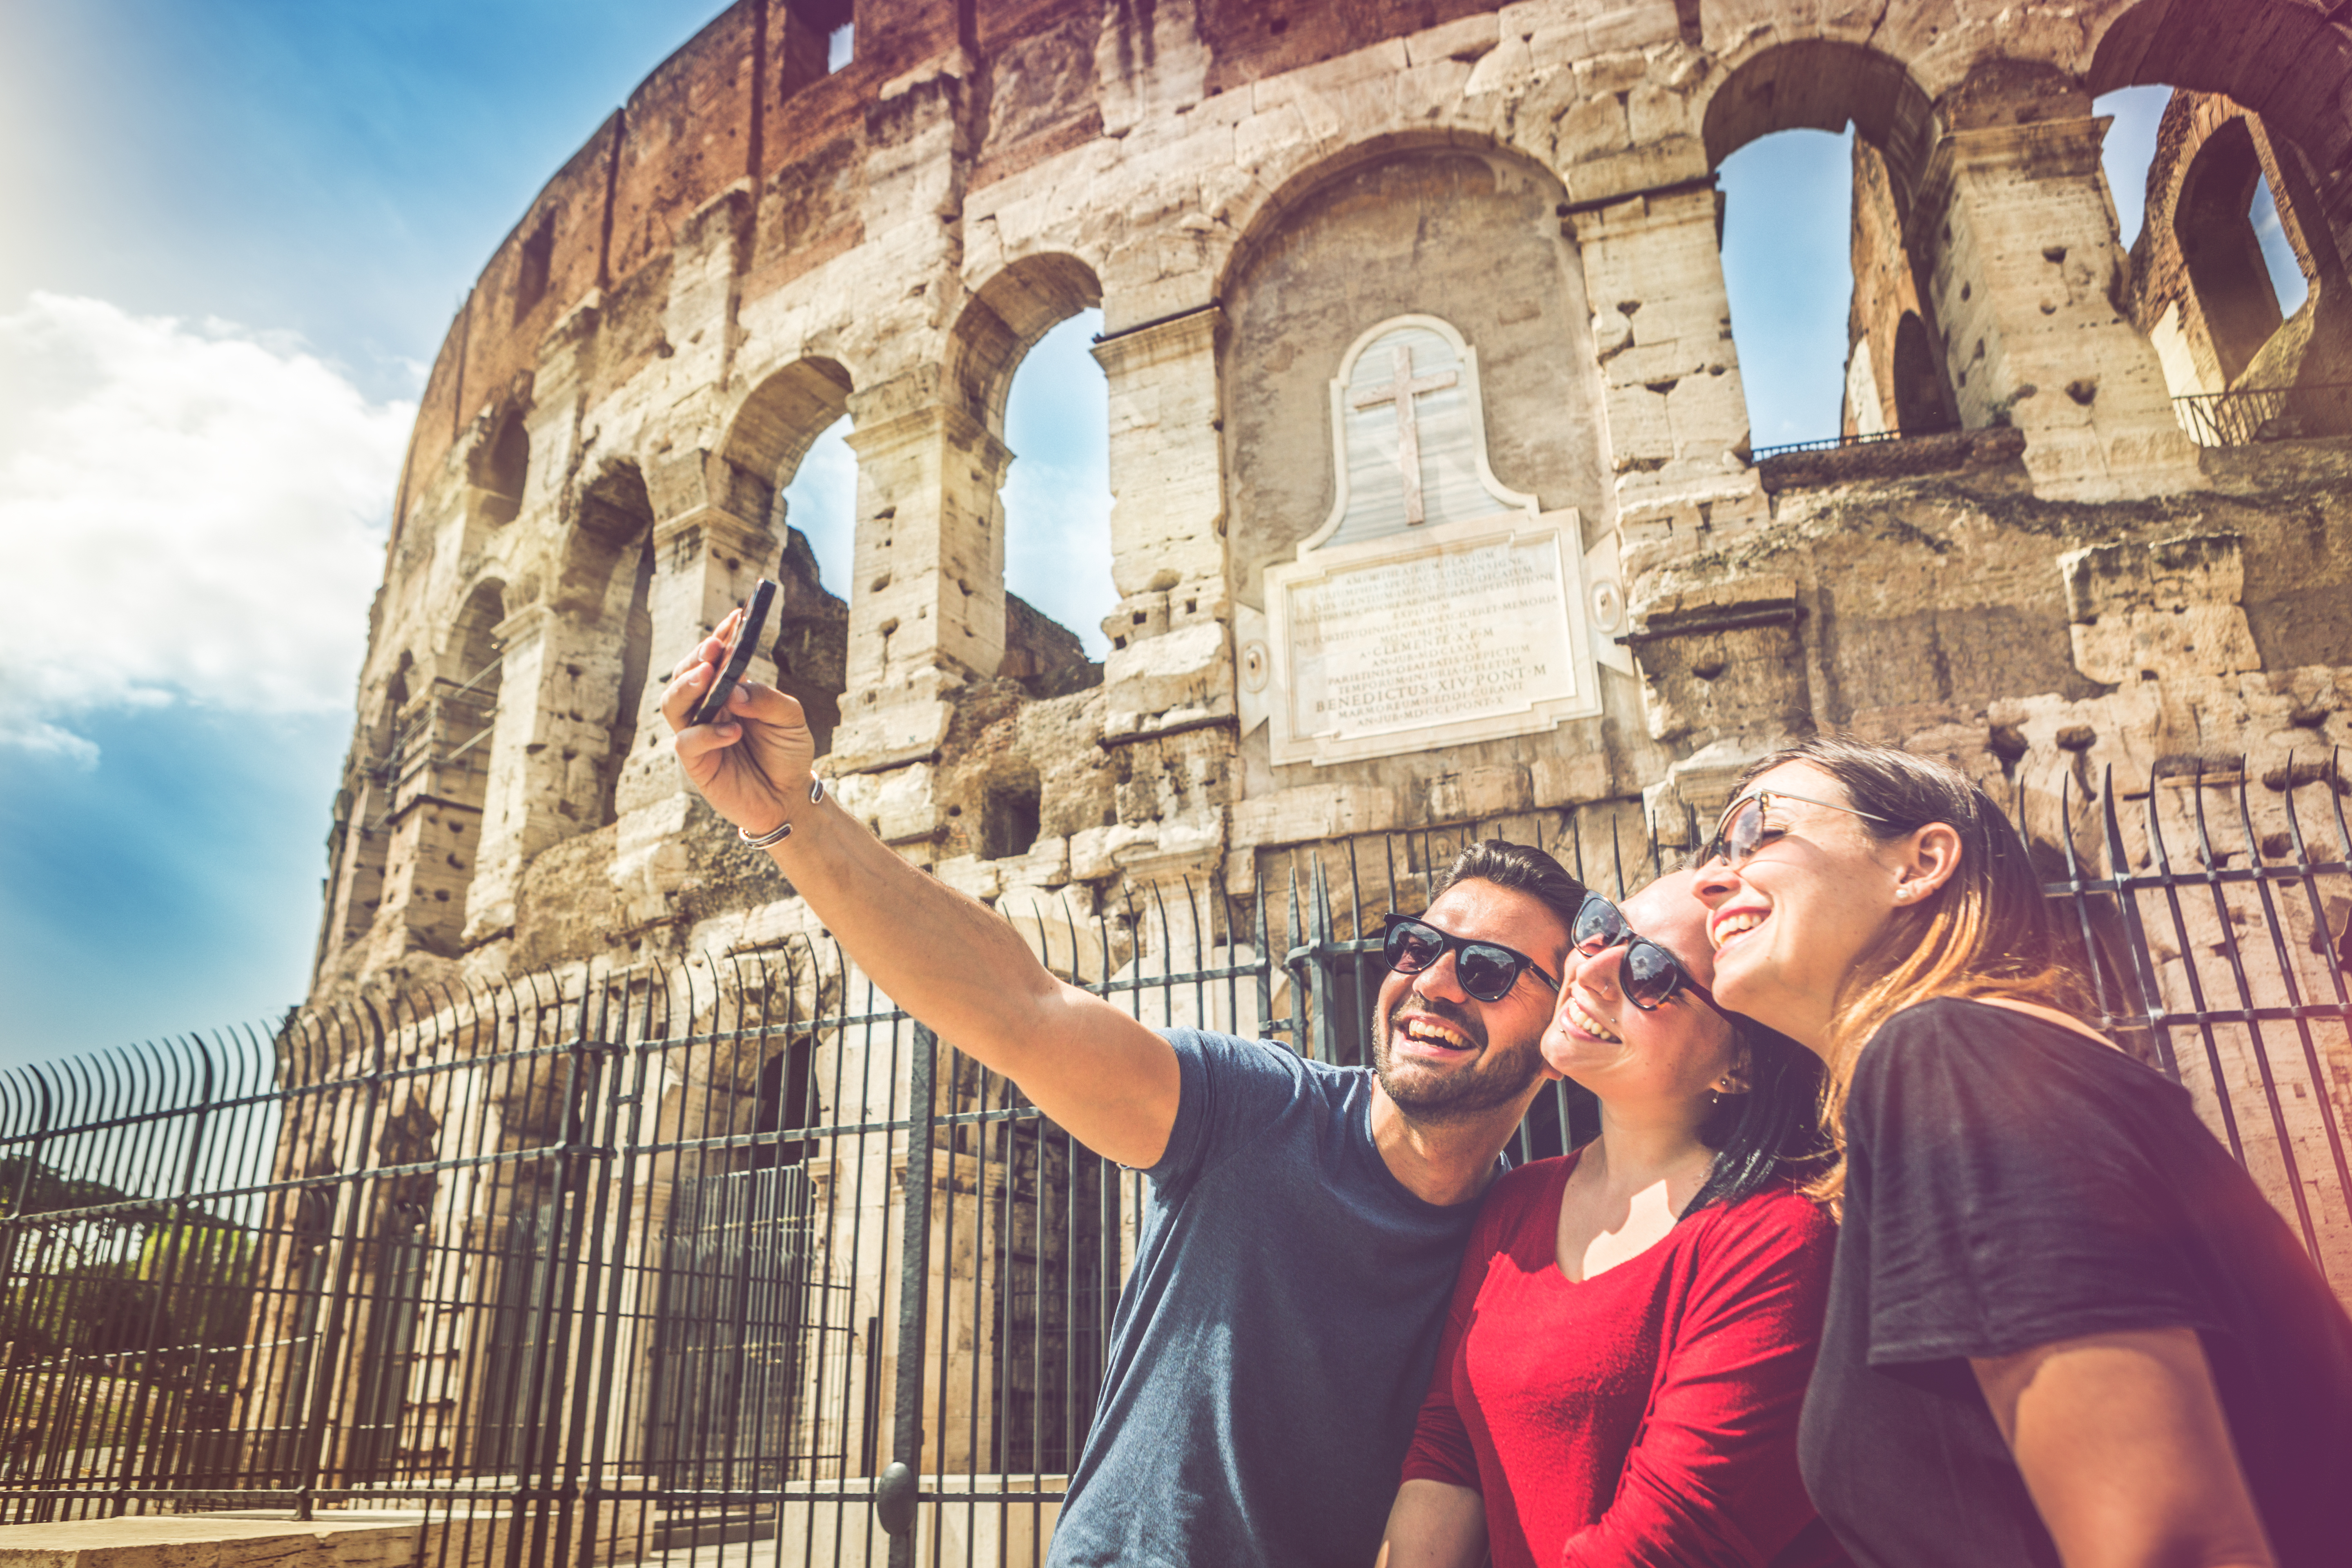 Friends taking a selfie in front of the Coliseum, Rome